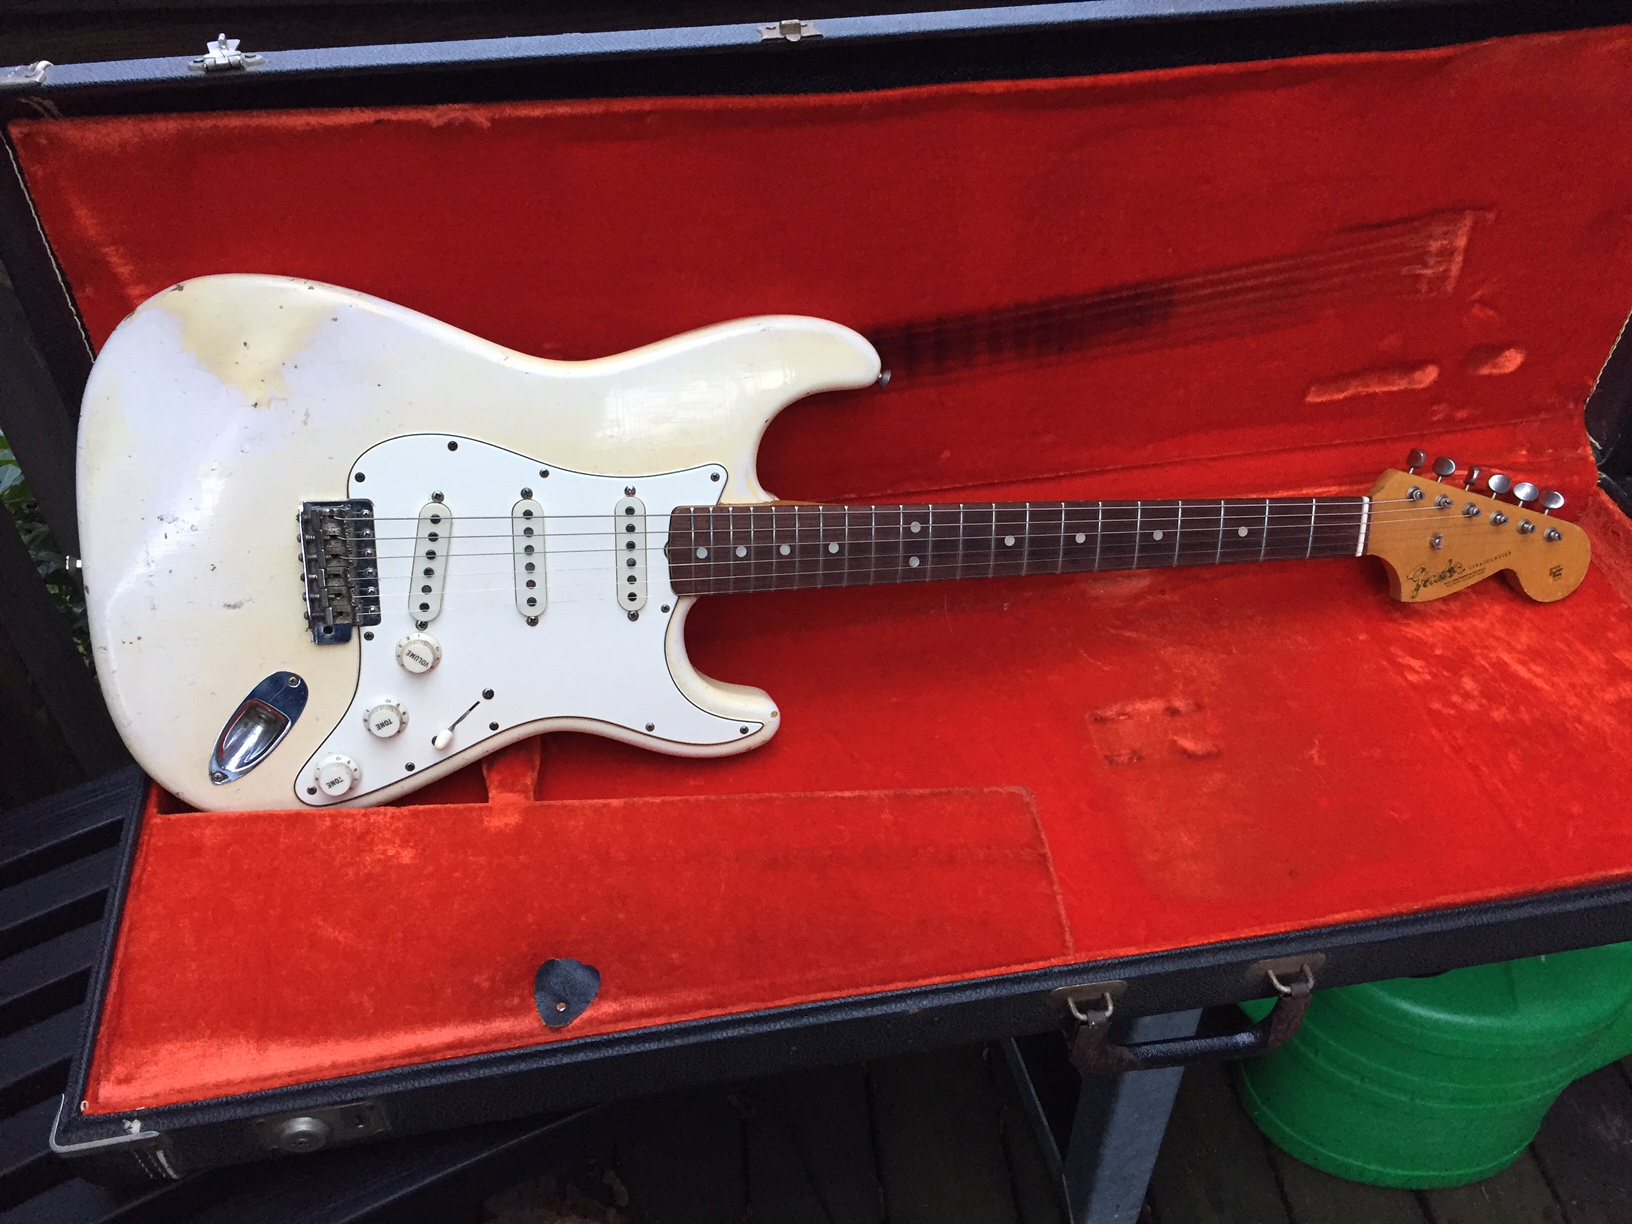 fender stratocaster 1966 olympic white guitar for sale anders anderson guitars. Black Bedroom Furniture Sets. Home Design Ideas